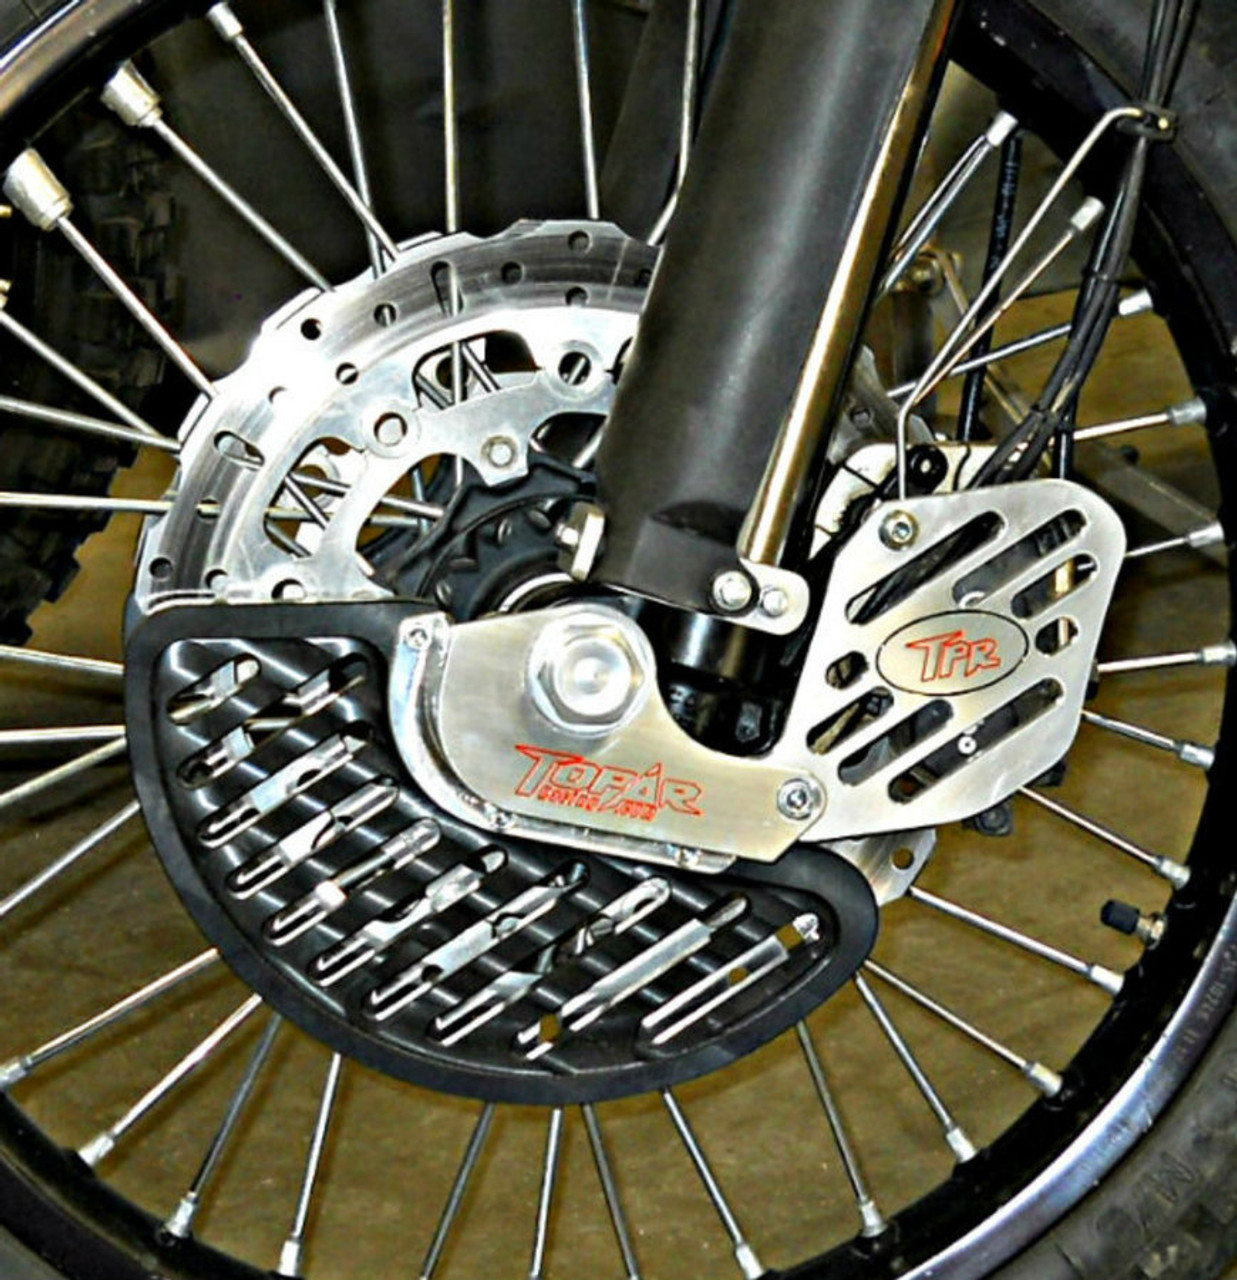 Topar Racing Front Brake Rotor Disc Guard for 2014-2018 KTM 690R Enduro (Complete Kit shown on Bike with Optional UHMW Fin and Caliper Guard)